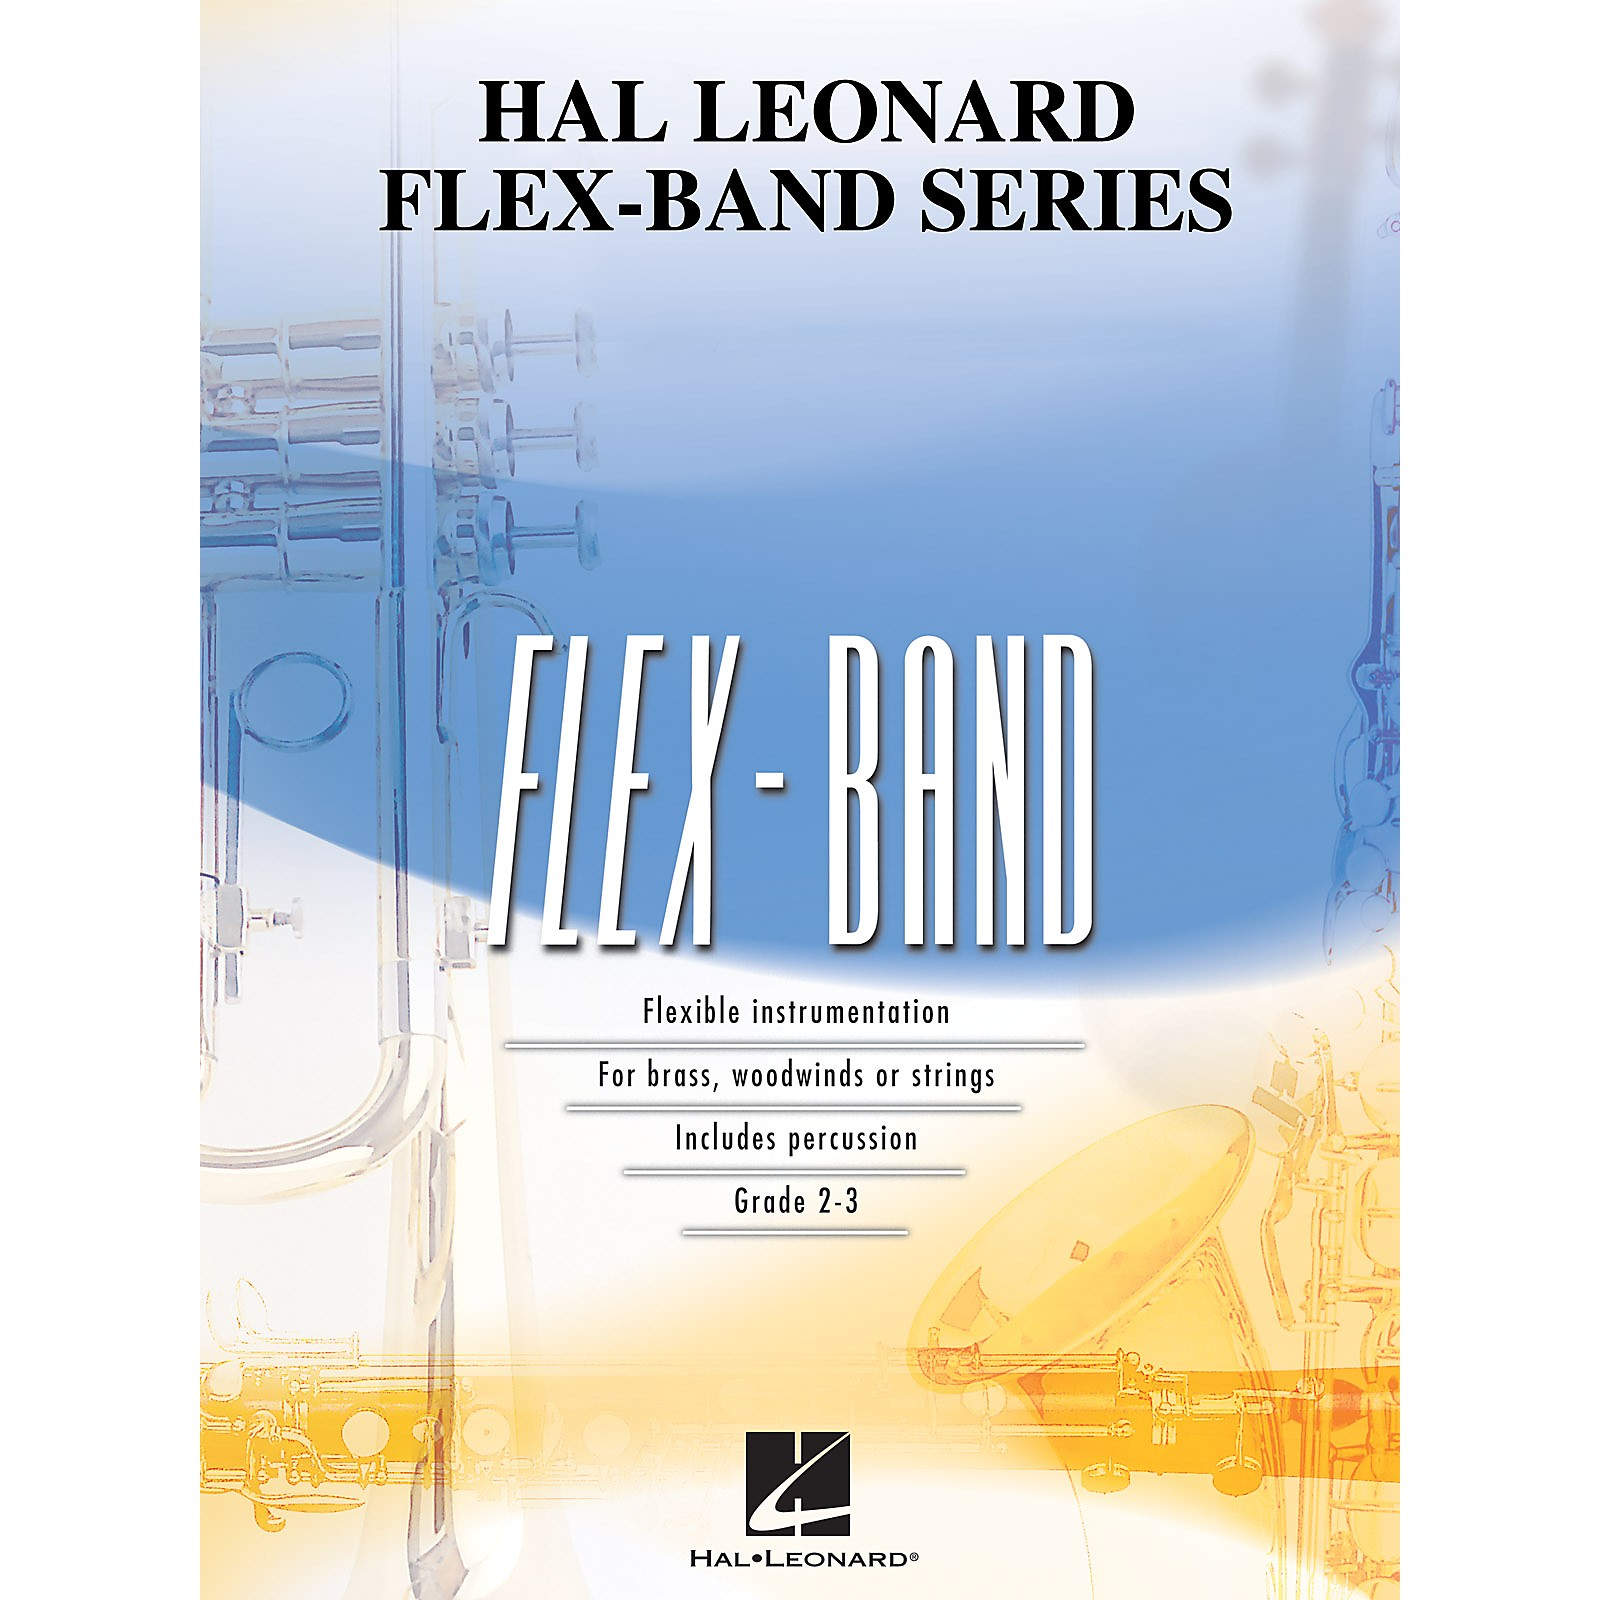 Hal Leonard Amparito Roca (spanish March) Full Score Concert Band